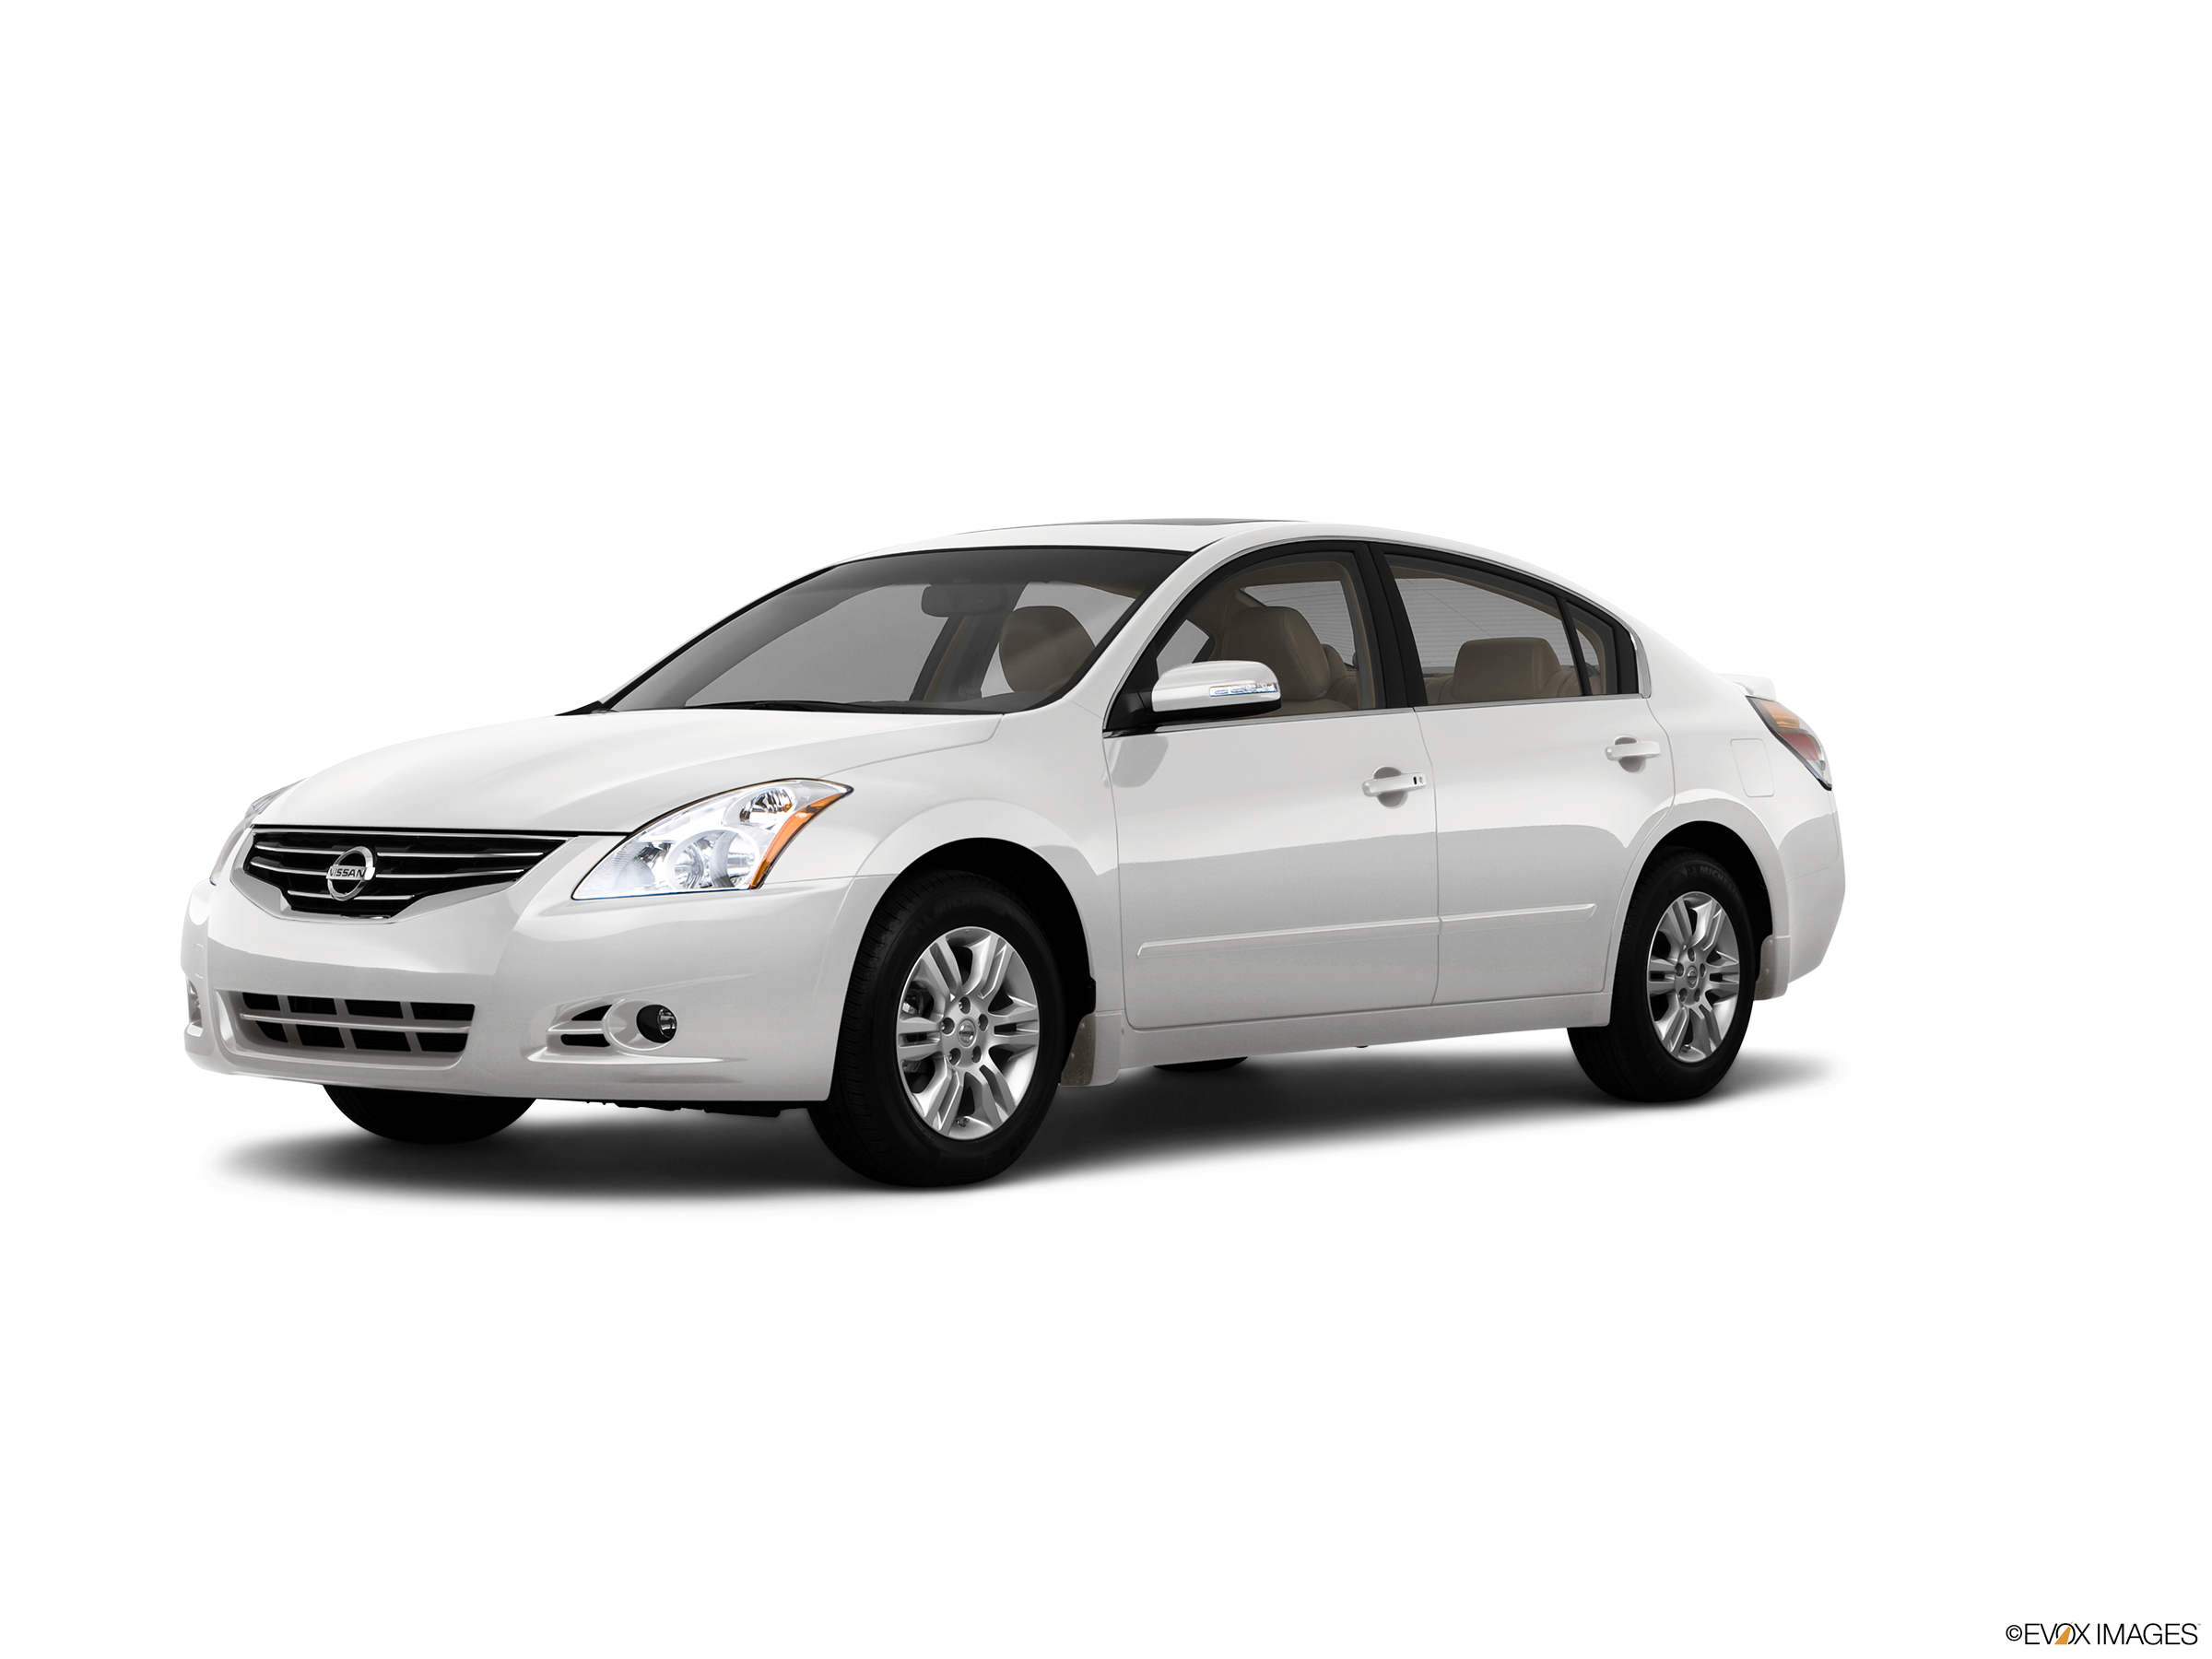 17++ How much is a 2010 nissan altima worth ideas